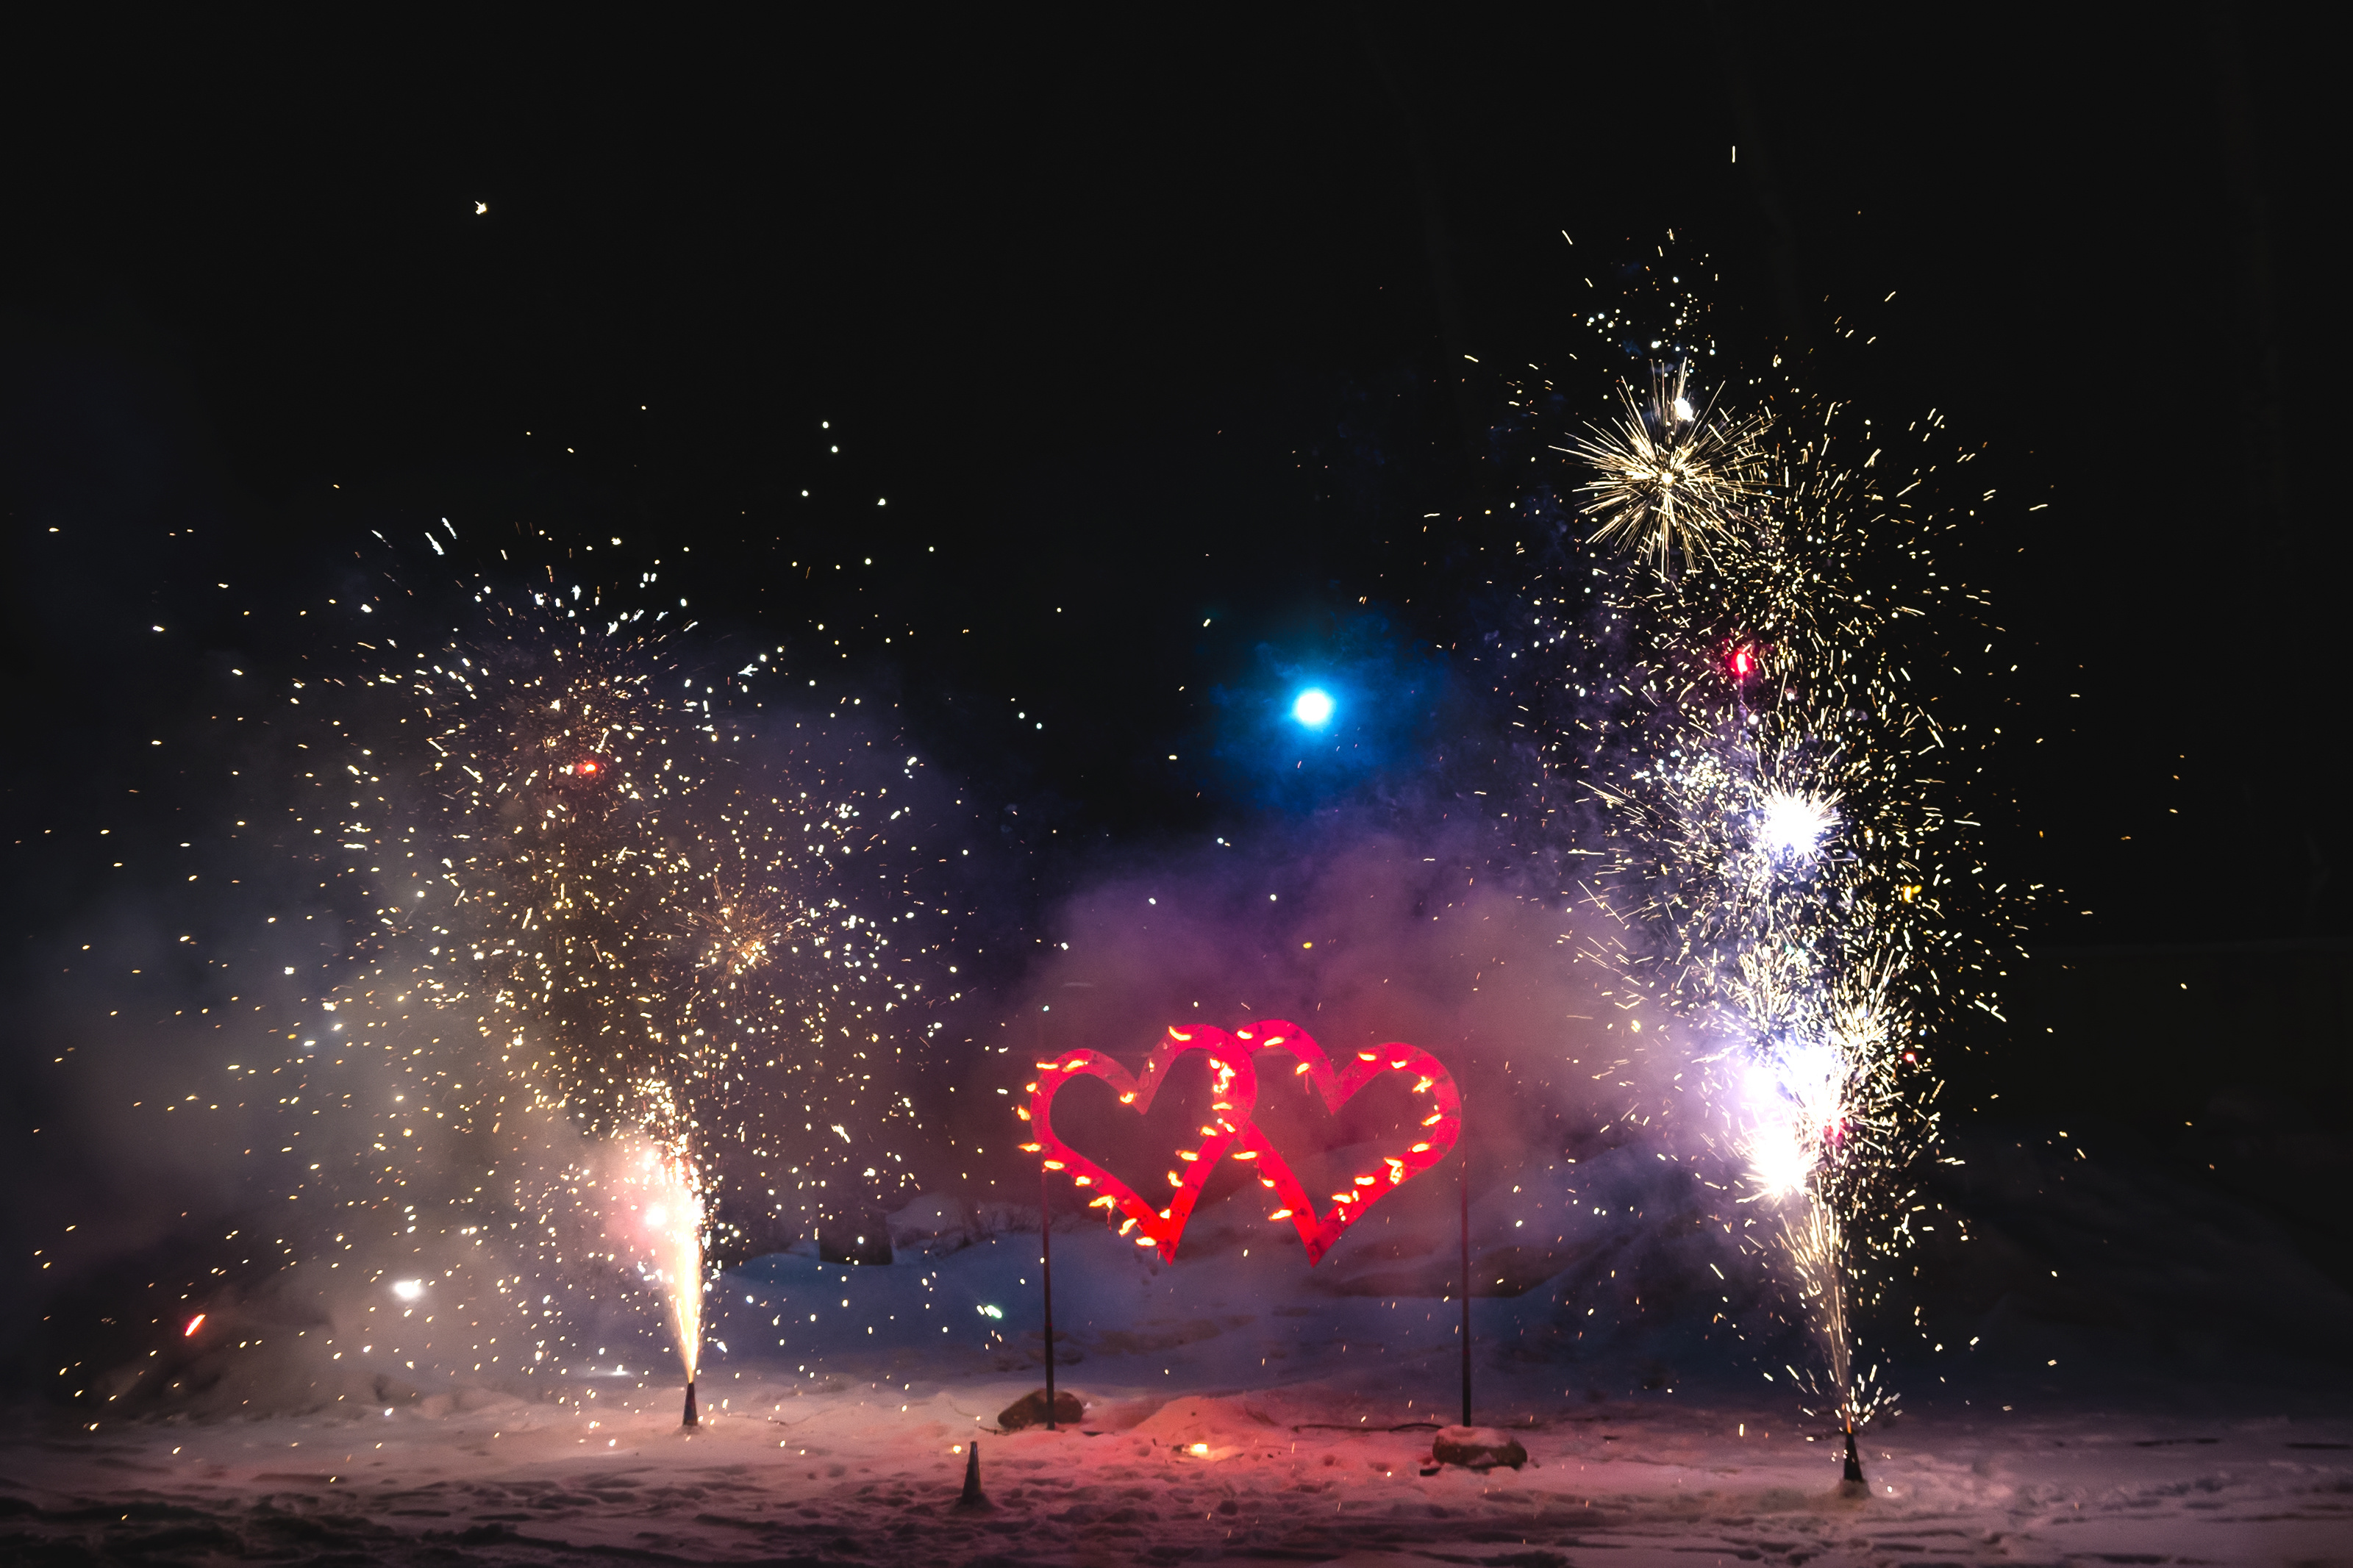 scenery from the burning hearts and fireworks for lovers